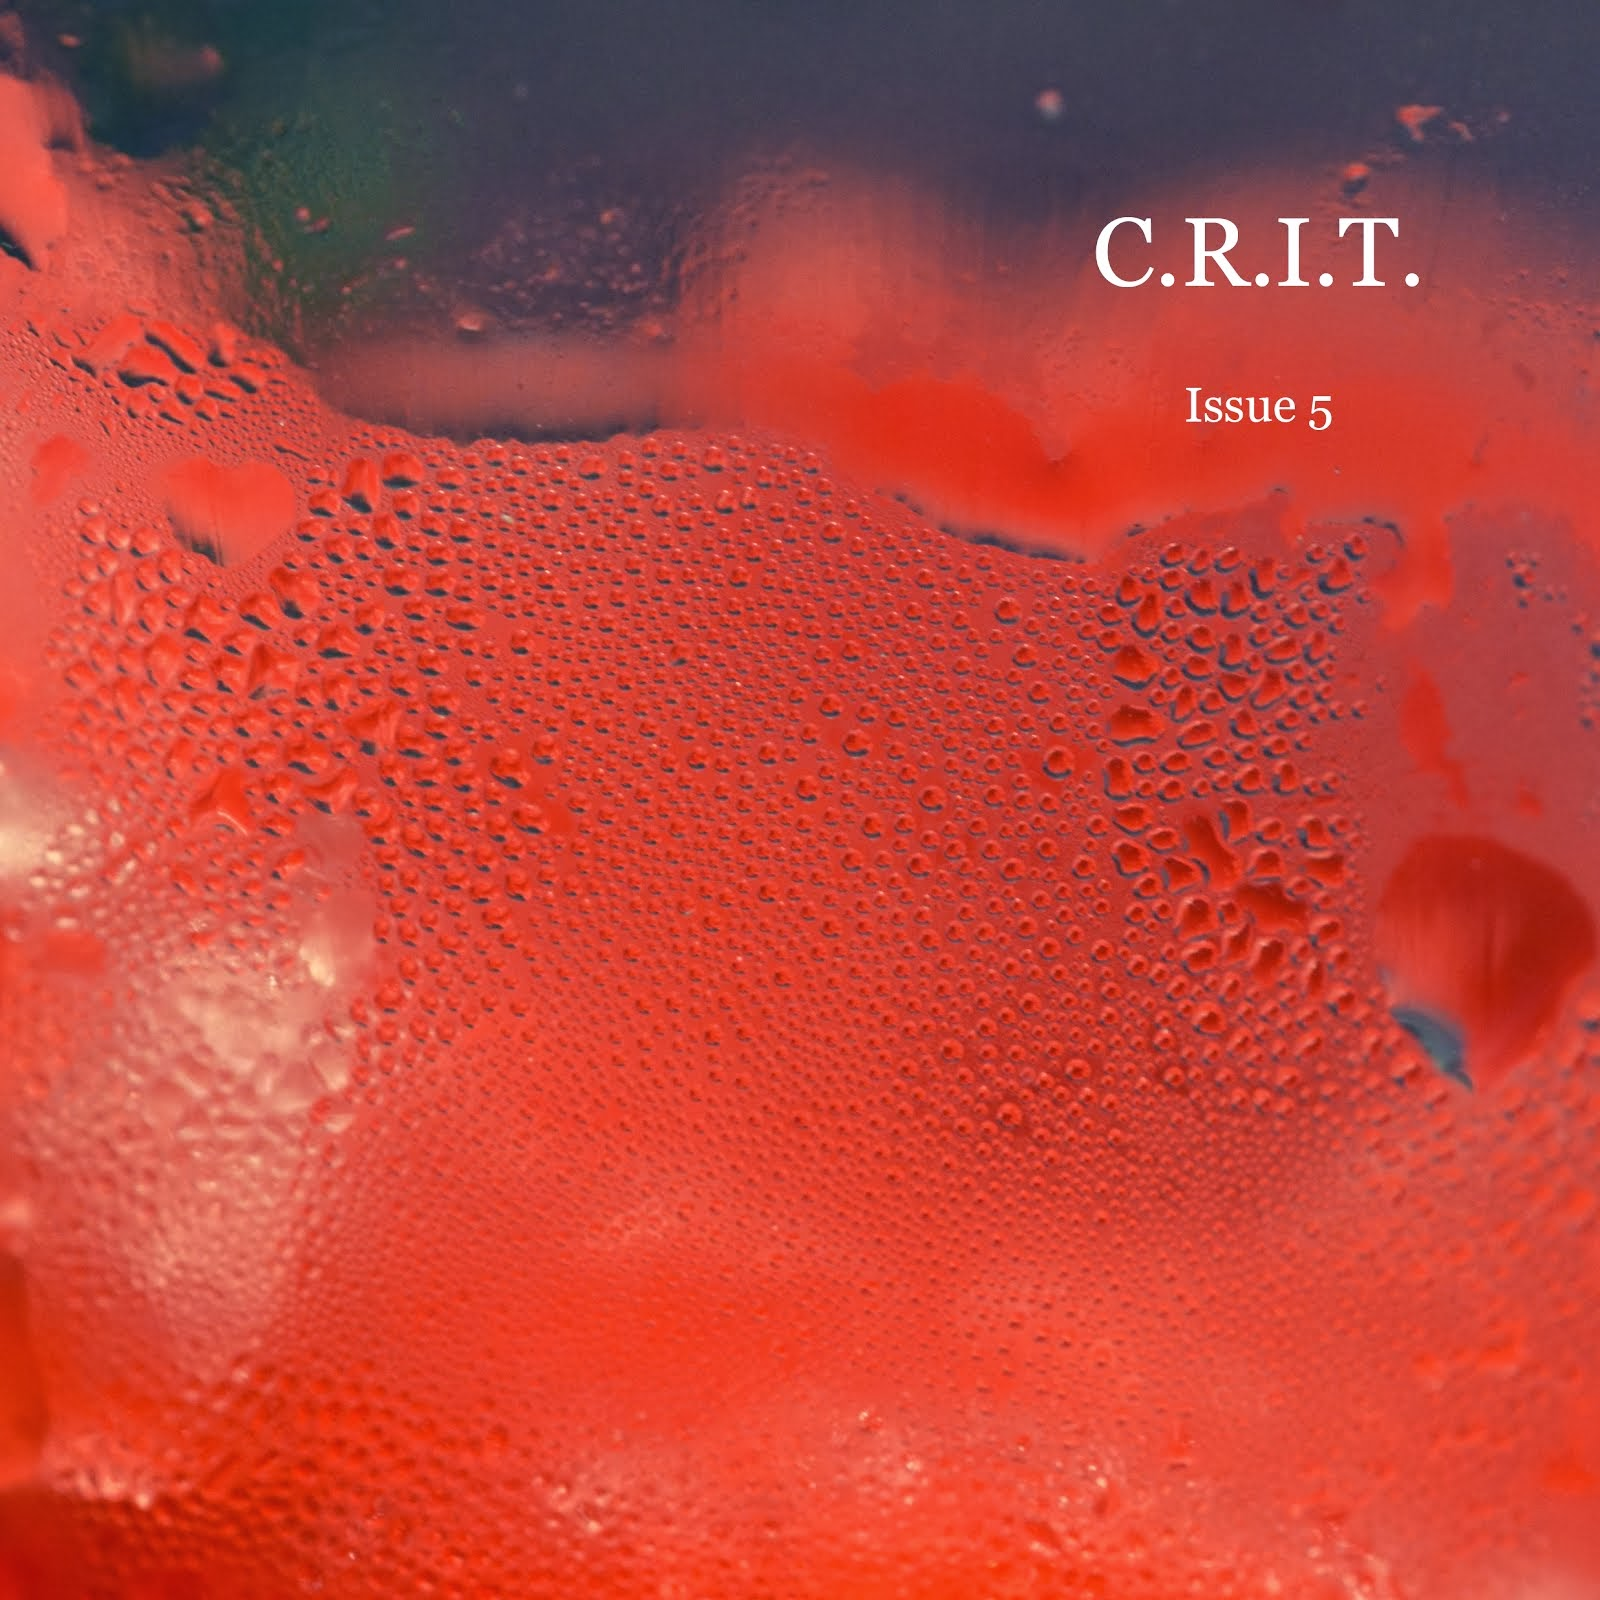 C.R.I.T. Issue 5 Fall 2013